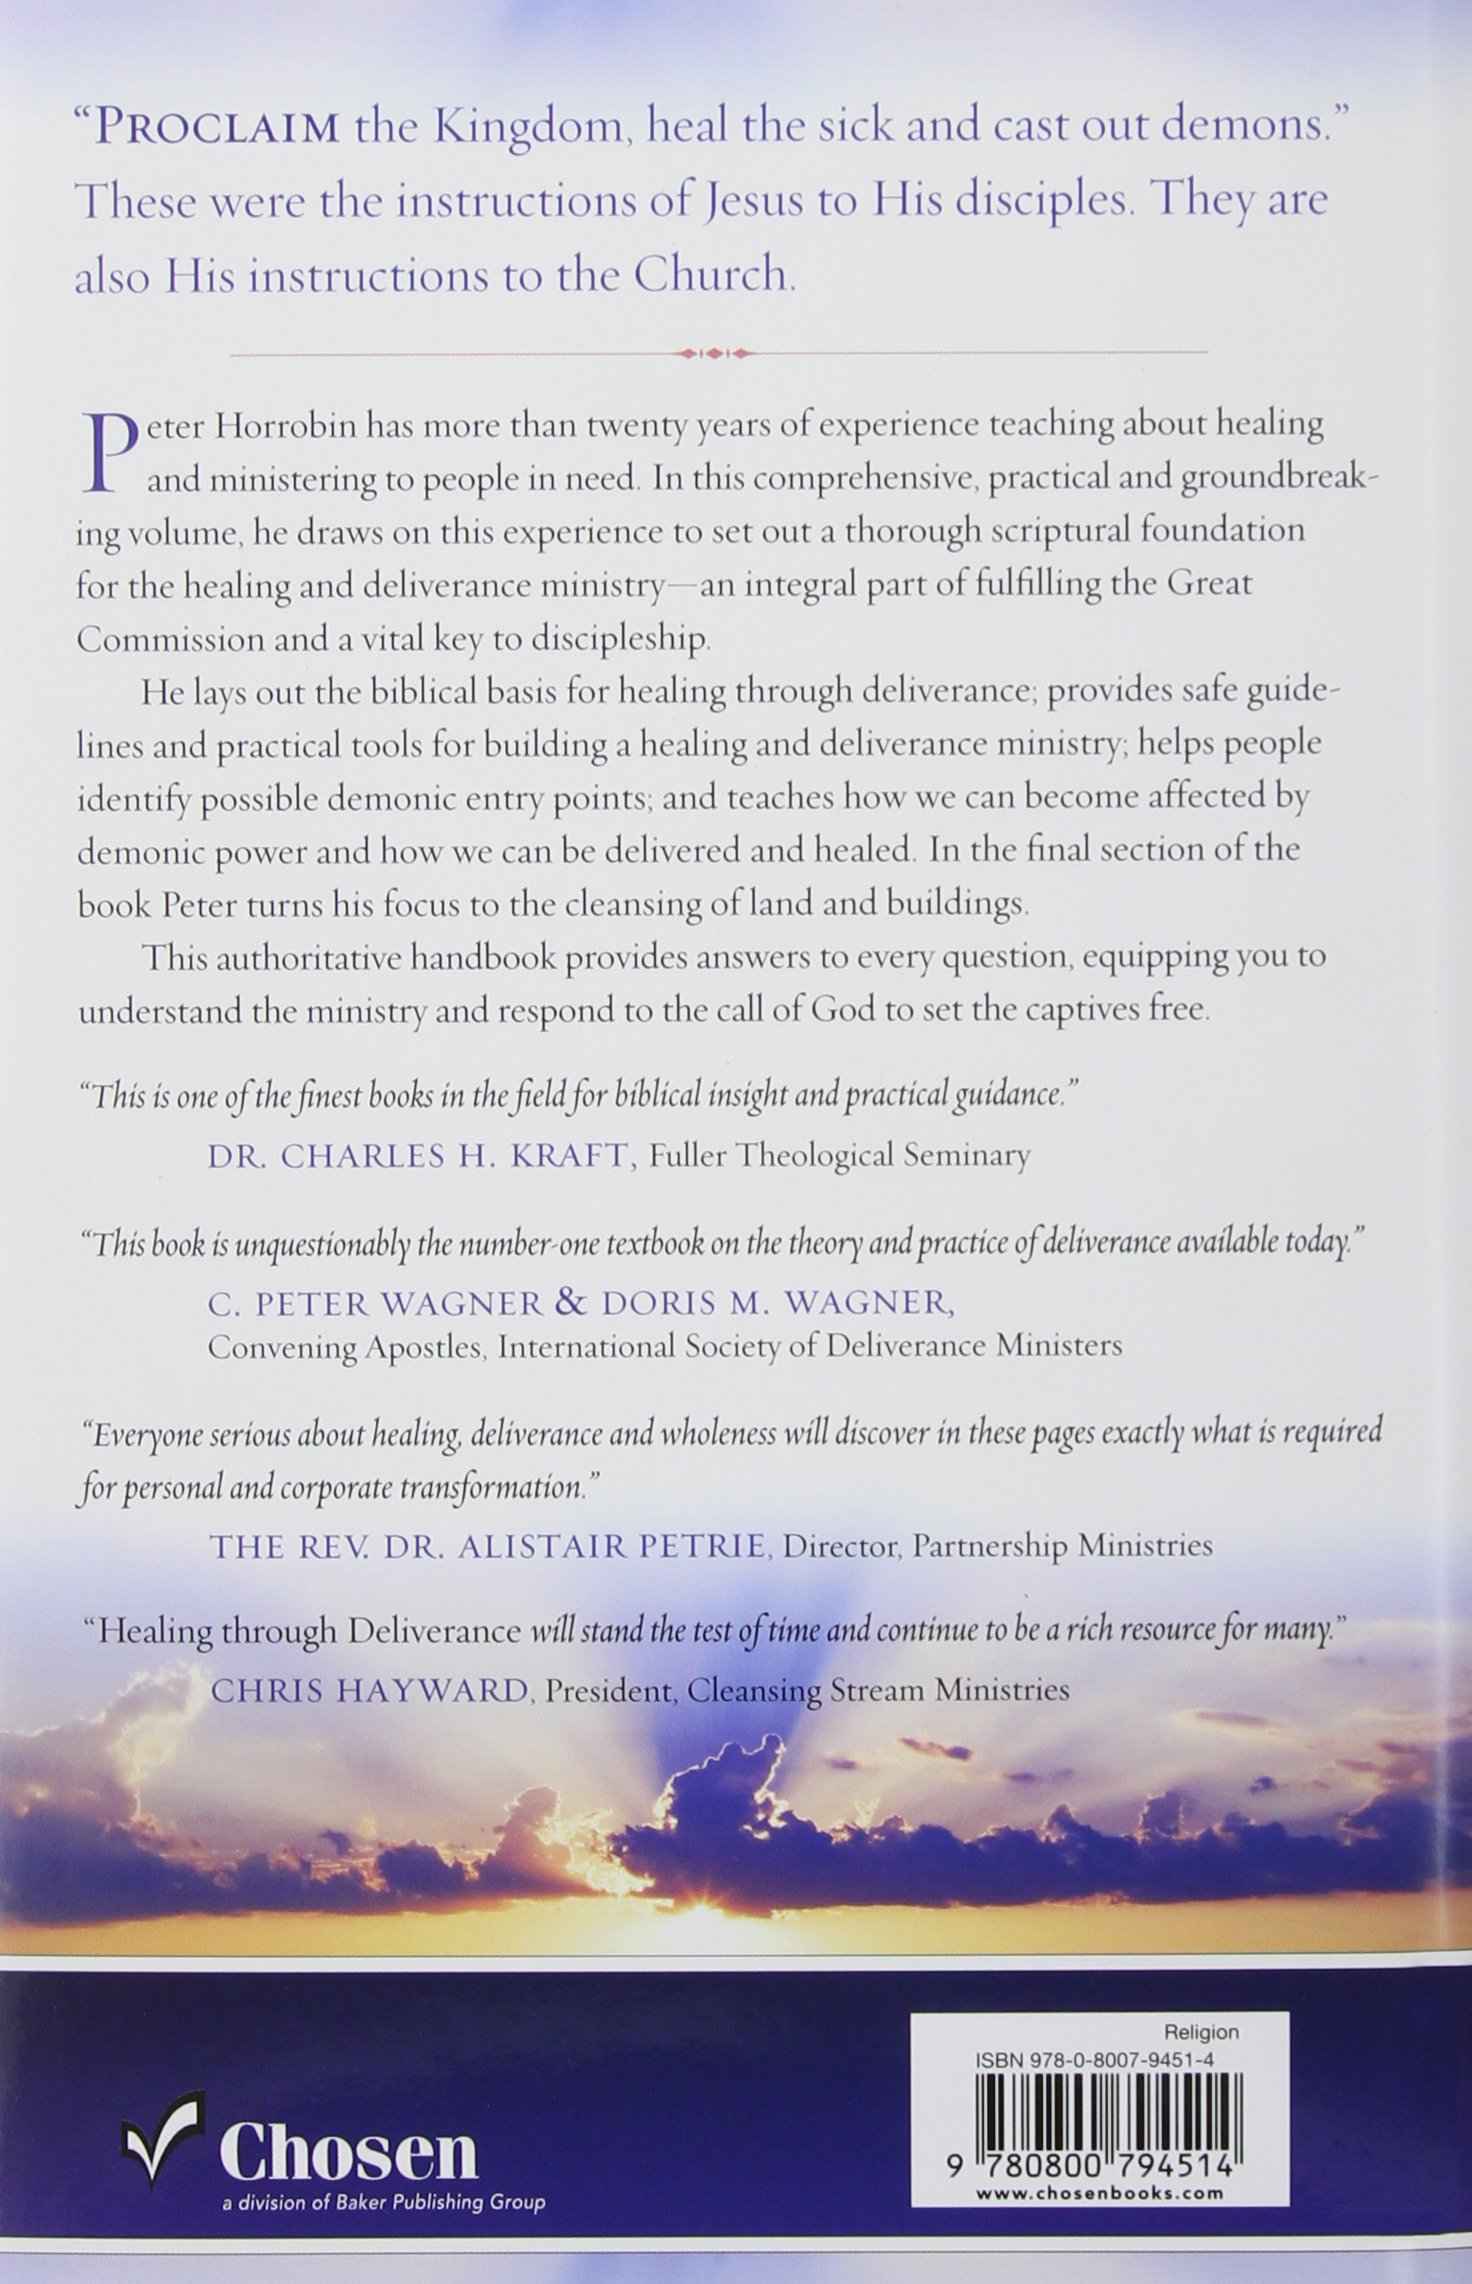 Healing through Deliverance: The Foundation and Practice of Deliverance Ministry by Baker Pub Group/Baker Books